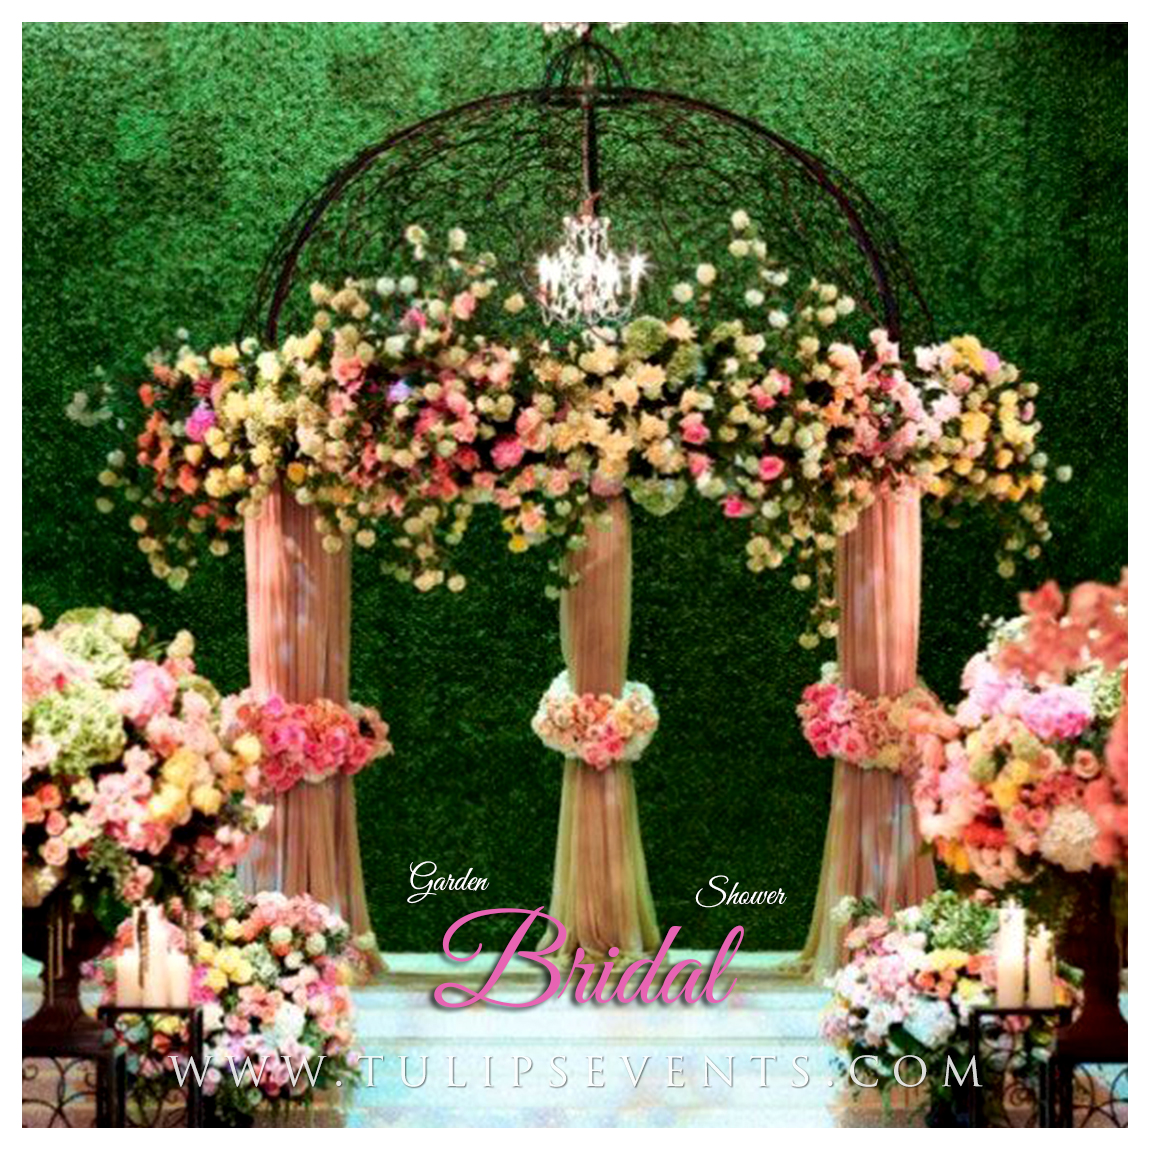 green garden theme bridal shower parties in pakistan